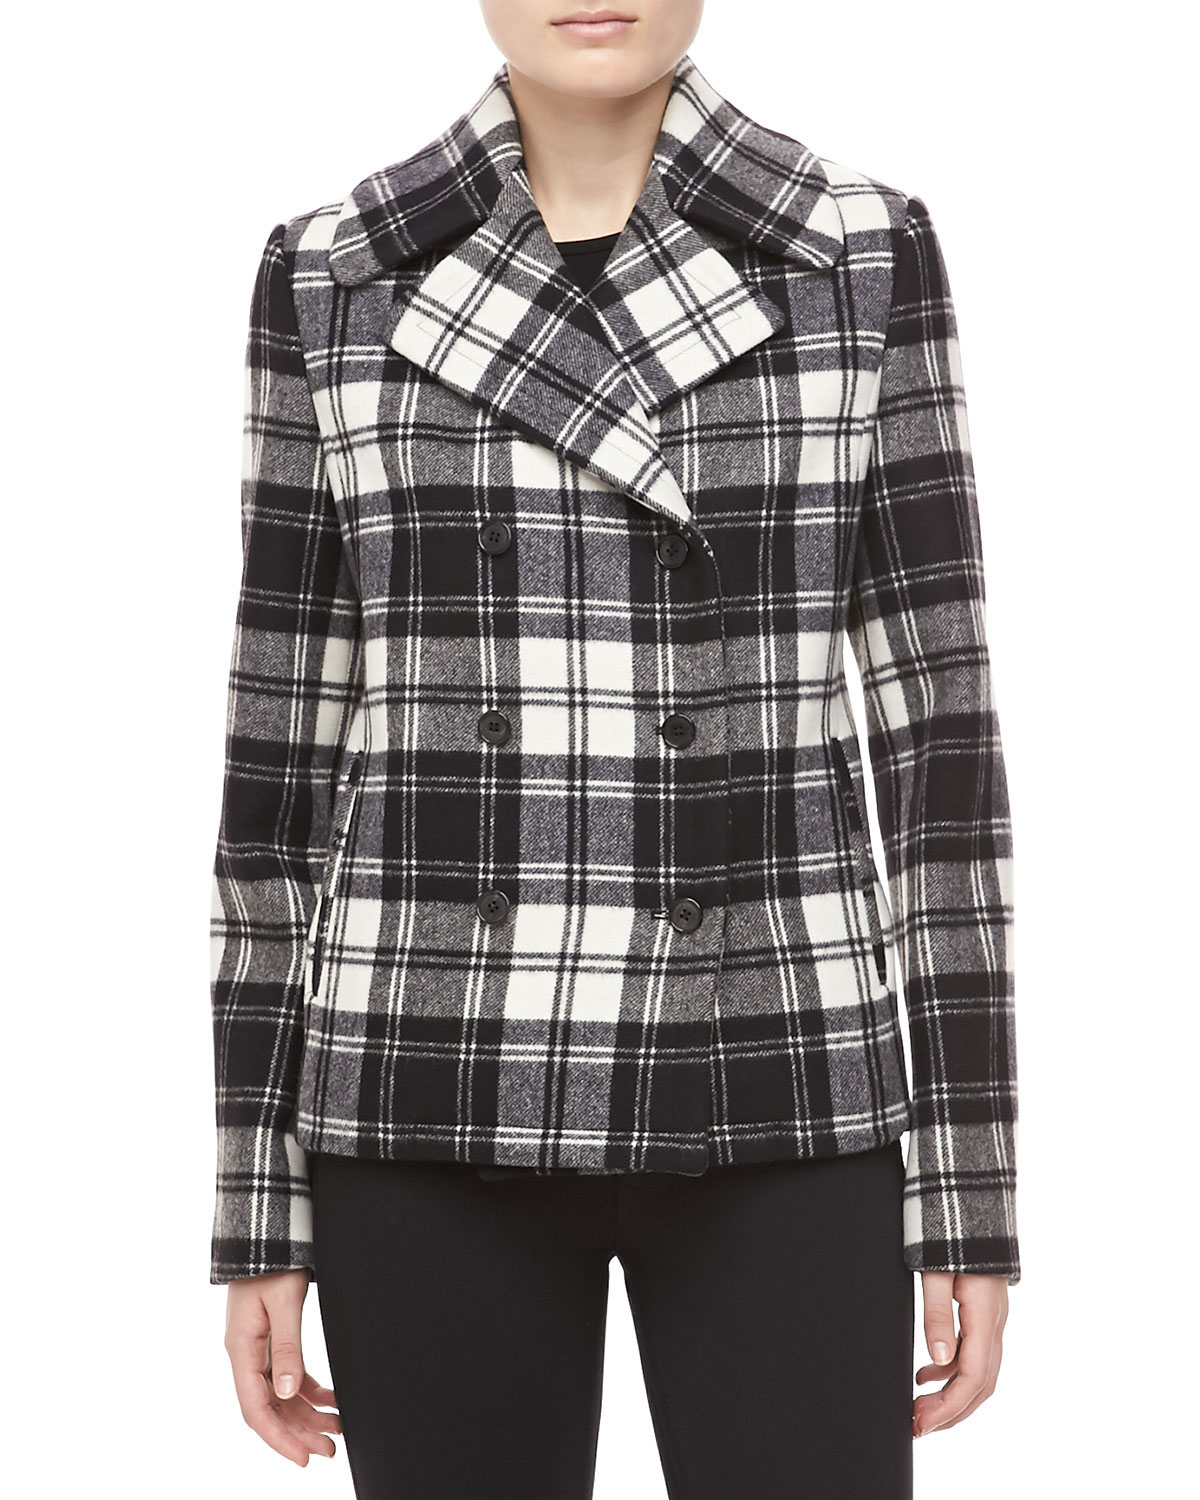 Fairfax Plaid Melton Jacket, Black/Ivory